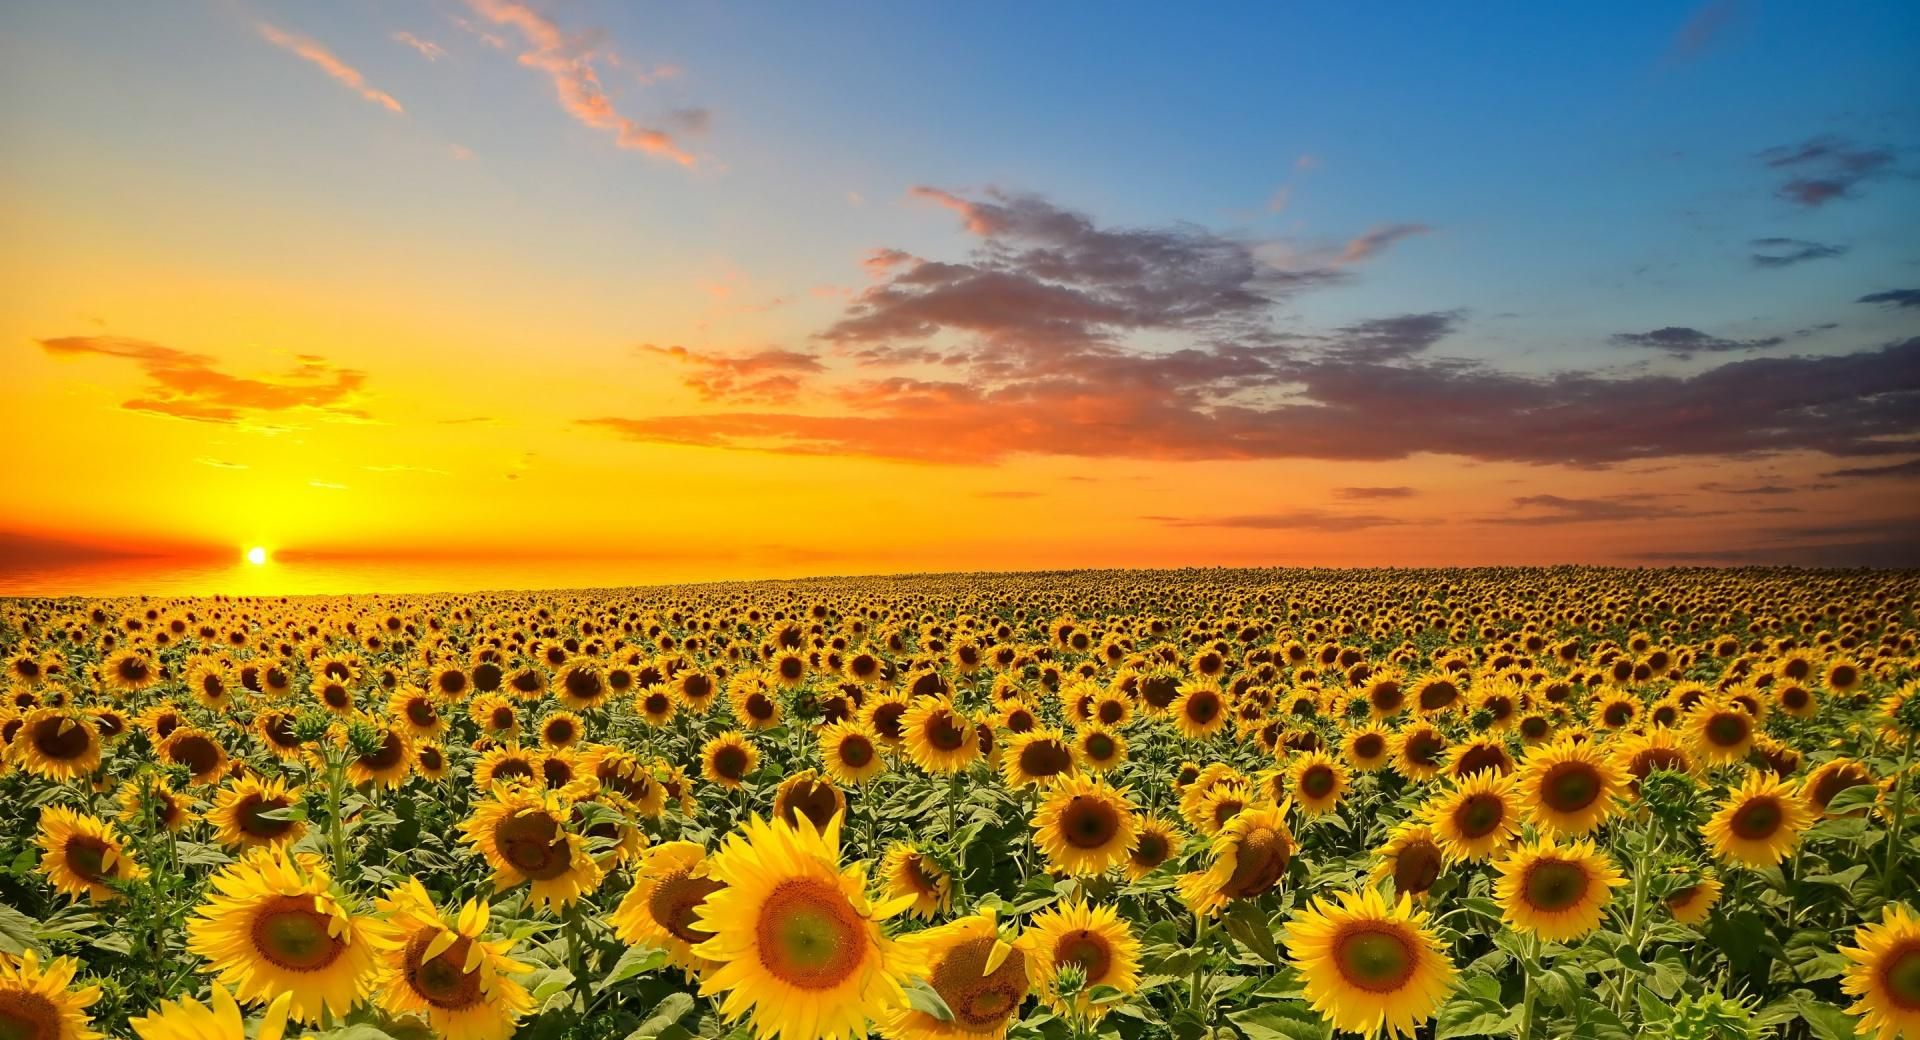 Sunset Over Sunflowers Field wallpapers HD quality